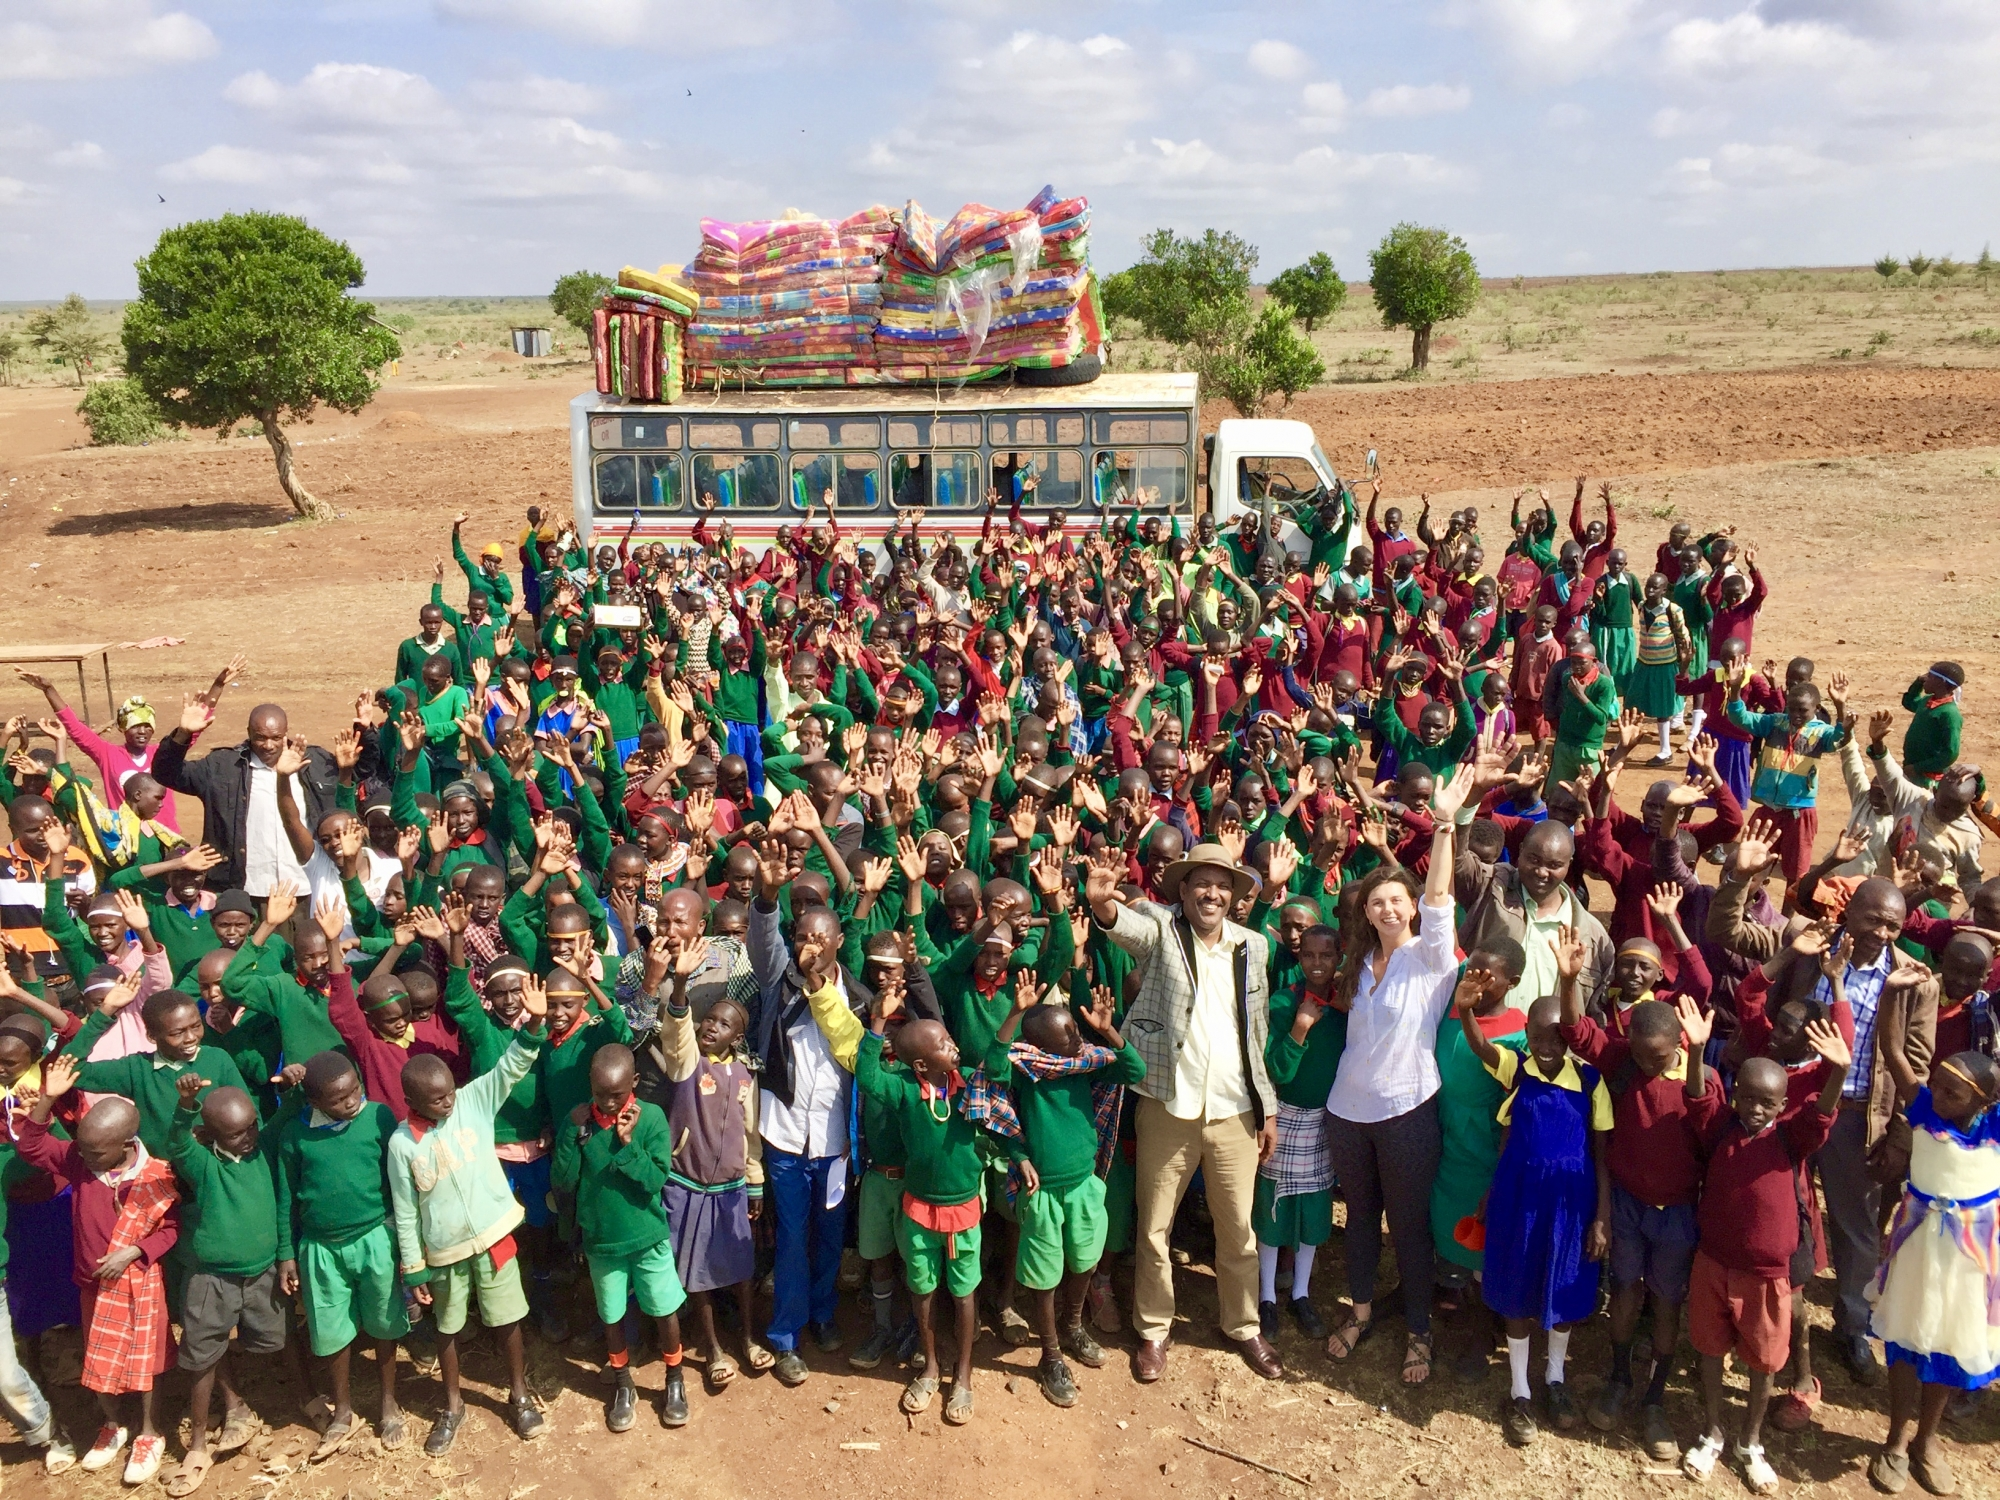 photo: Taking place in Kenya, GW student Francesca Diggs stands in the middle of a group of over 50 children in front of a school bus. The children, who are waving and smiling with excitement, are wearing vibrant green and red traditional uniforms. Behind them is the serene, vast landscape of Kenya